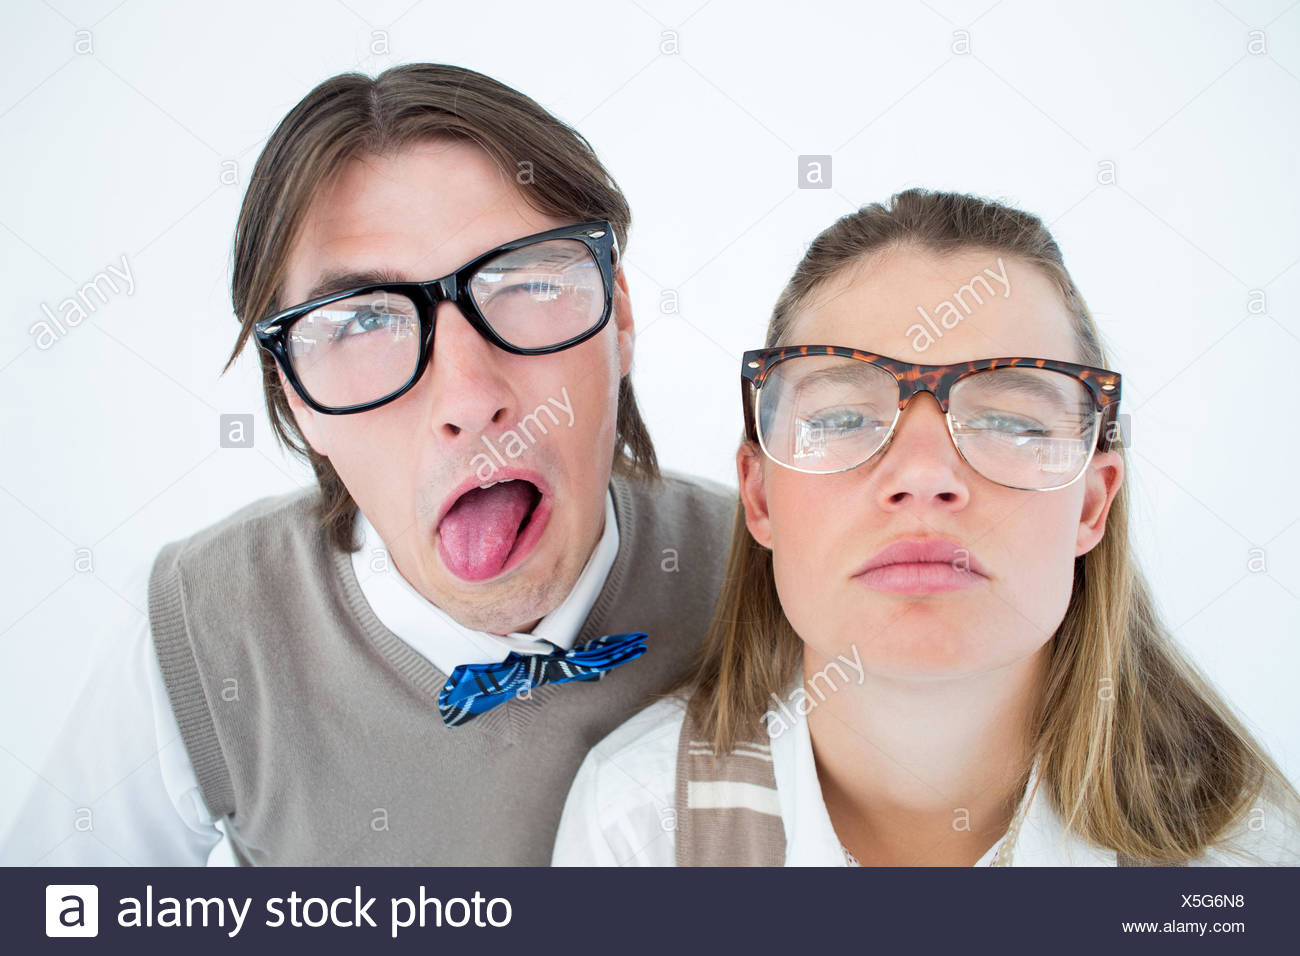 Funny geeky hipsters grimacing - Stock Image